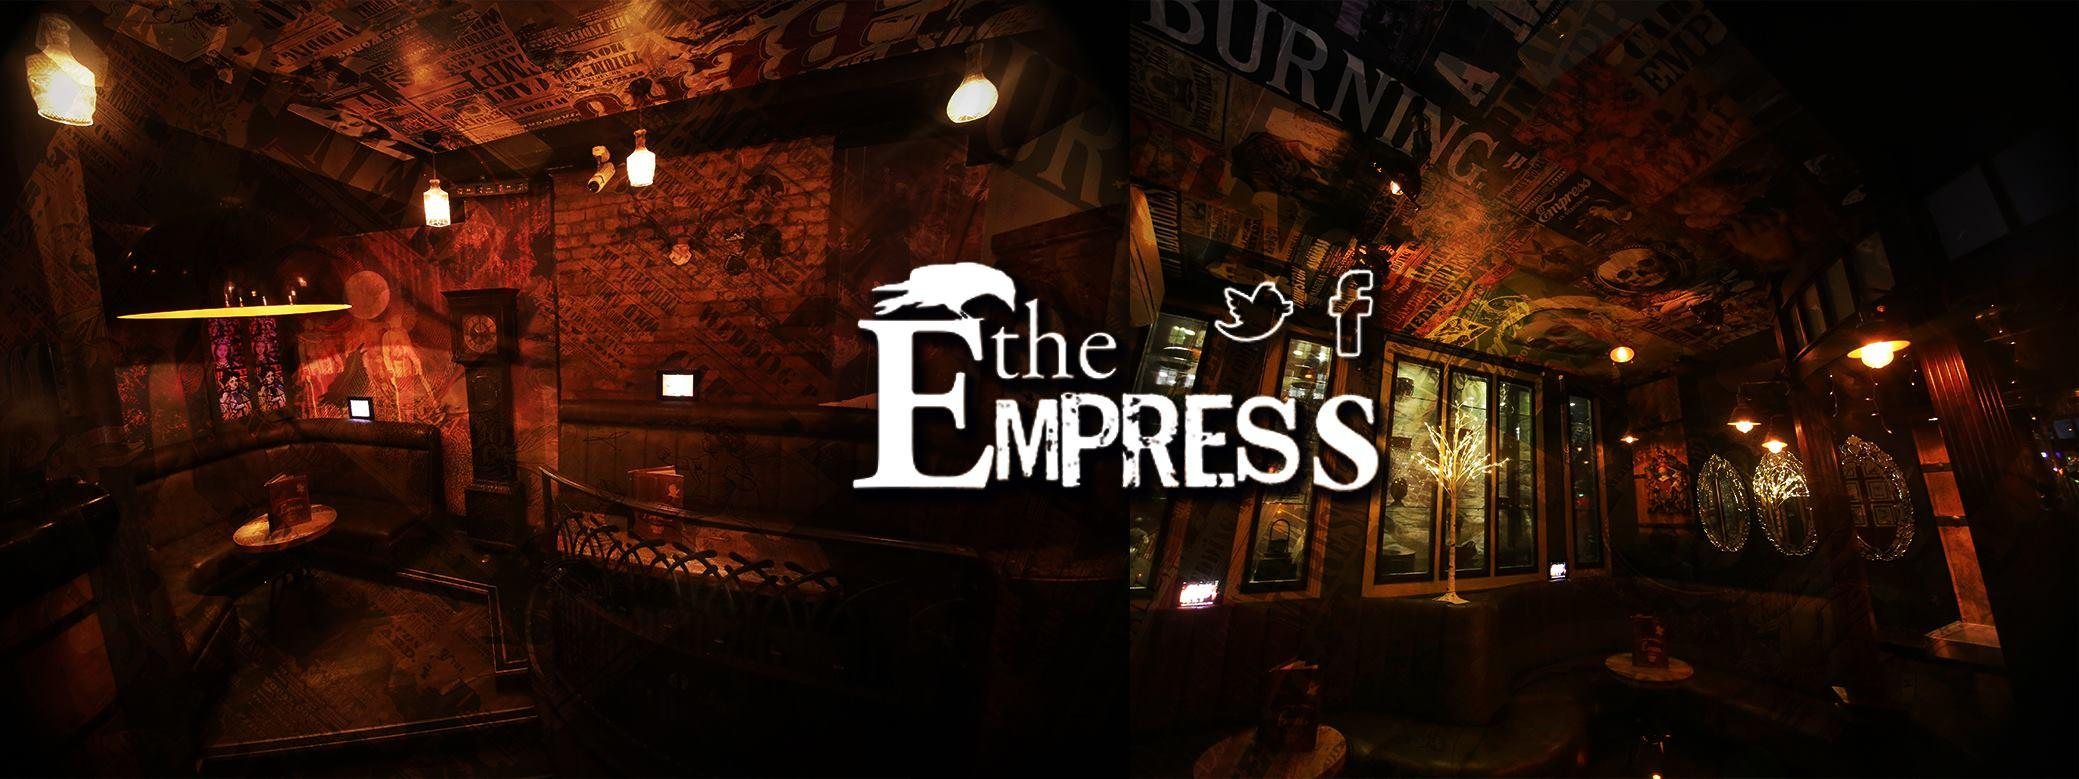 The Empress